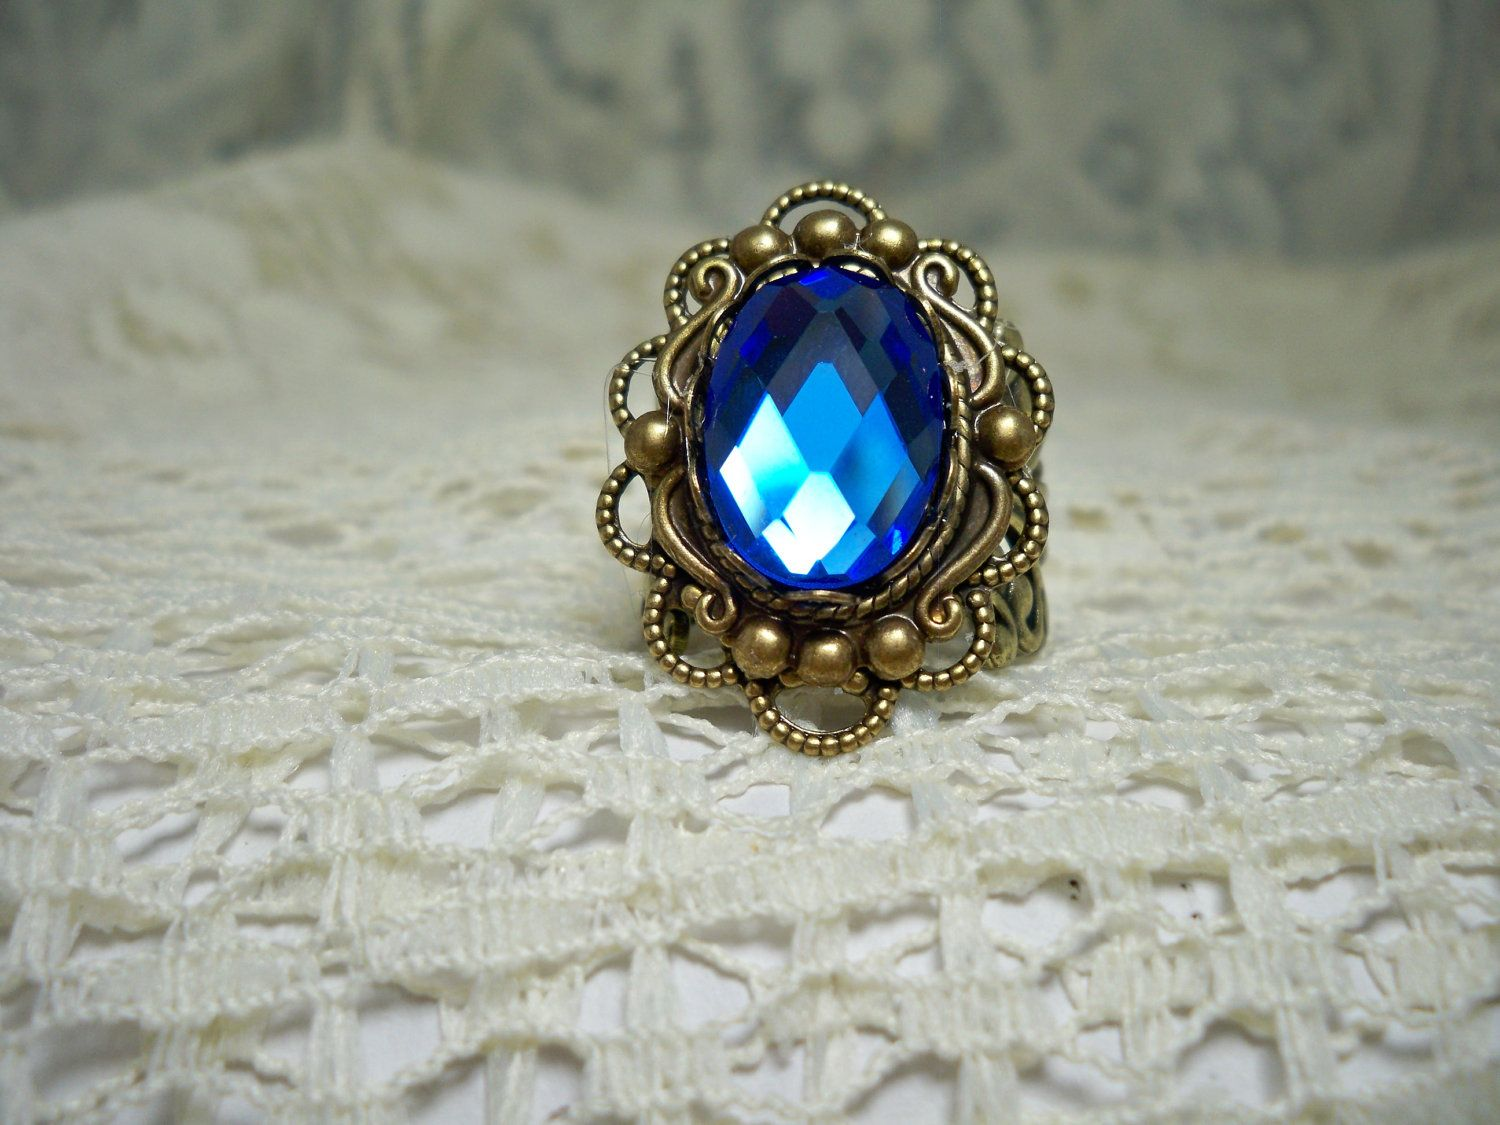 Ring -  Blue Sapphire  Glass Jewel  -  Vintage Style ring - Sale - Free Shipping. $14.95, via Etsy.